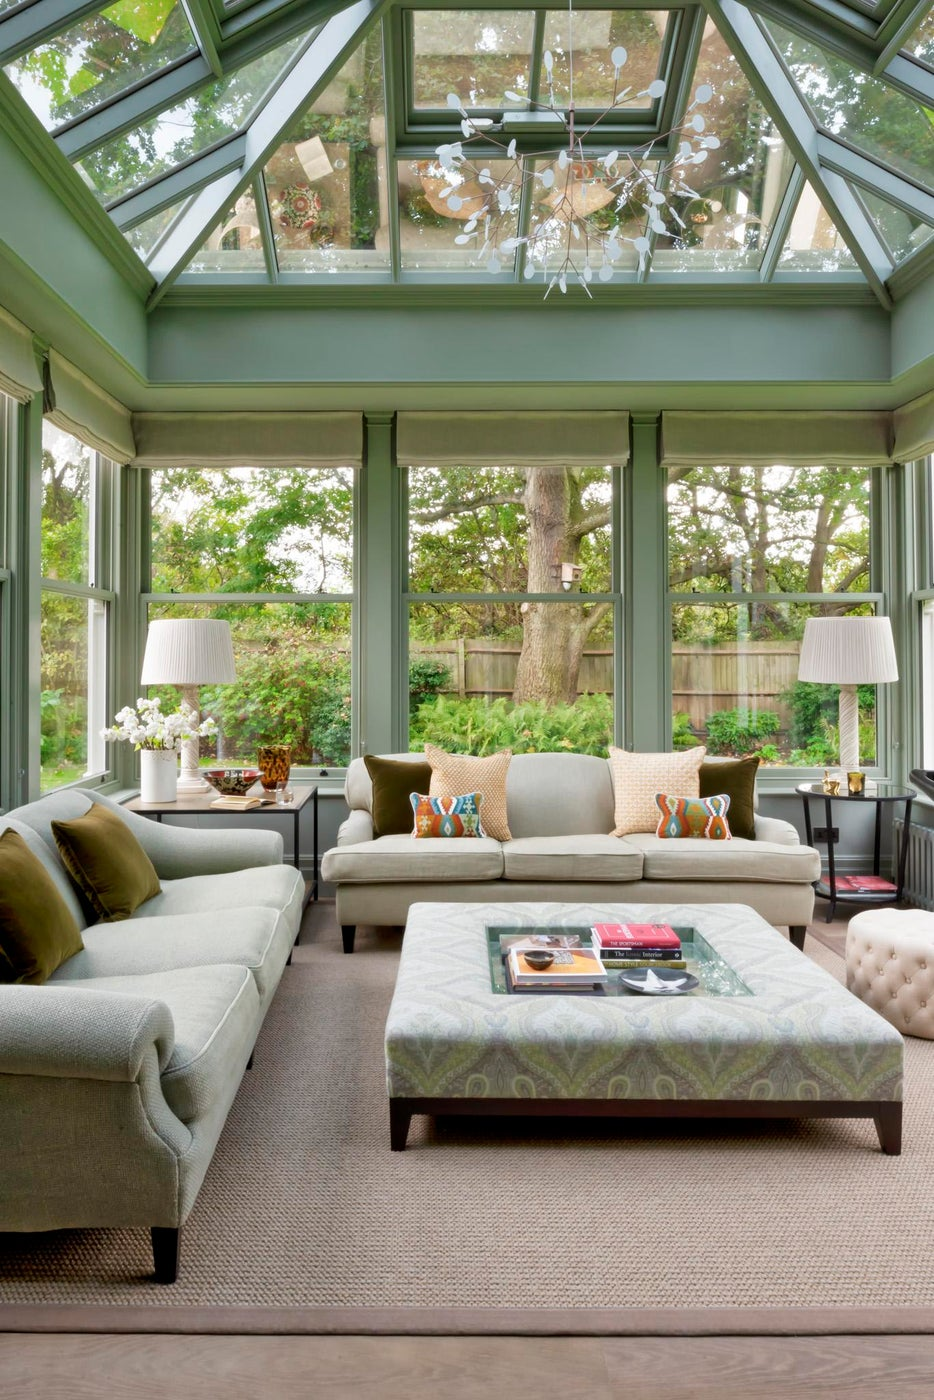 Barnes, London - Conservatory with bespoke upholstered furniture and blinds